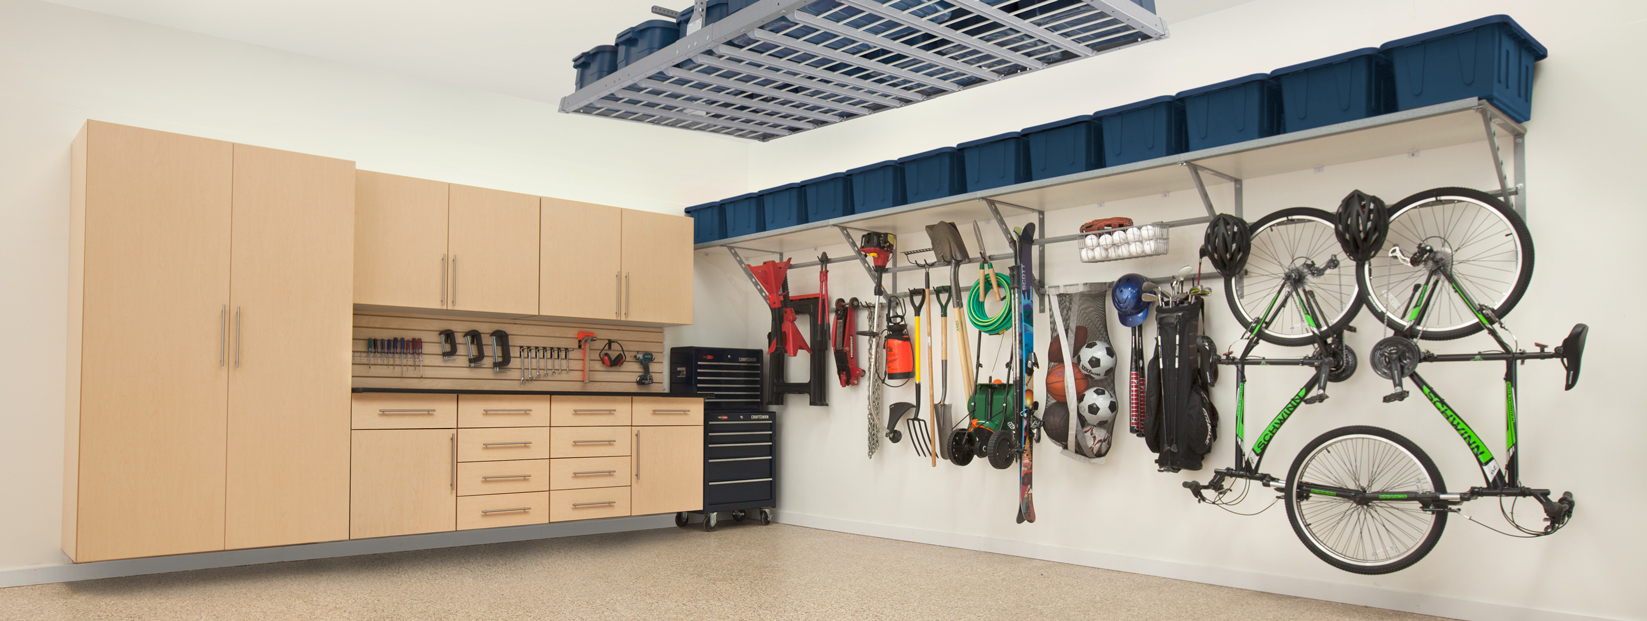 garage storage in Daly City